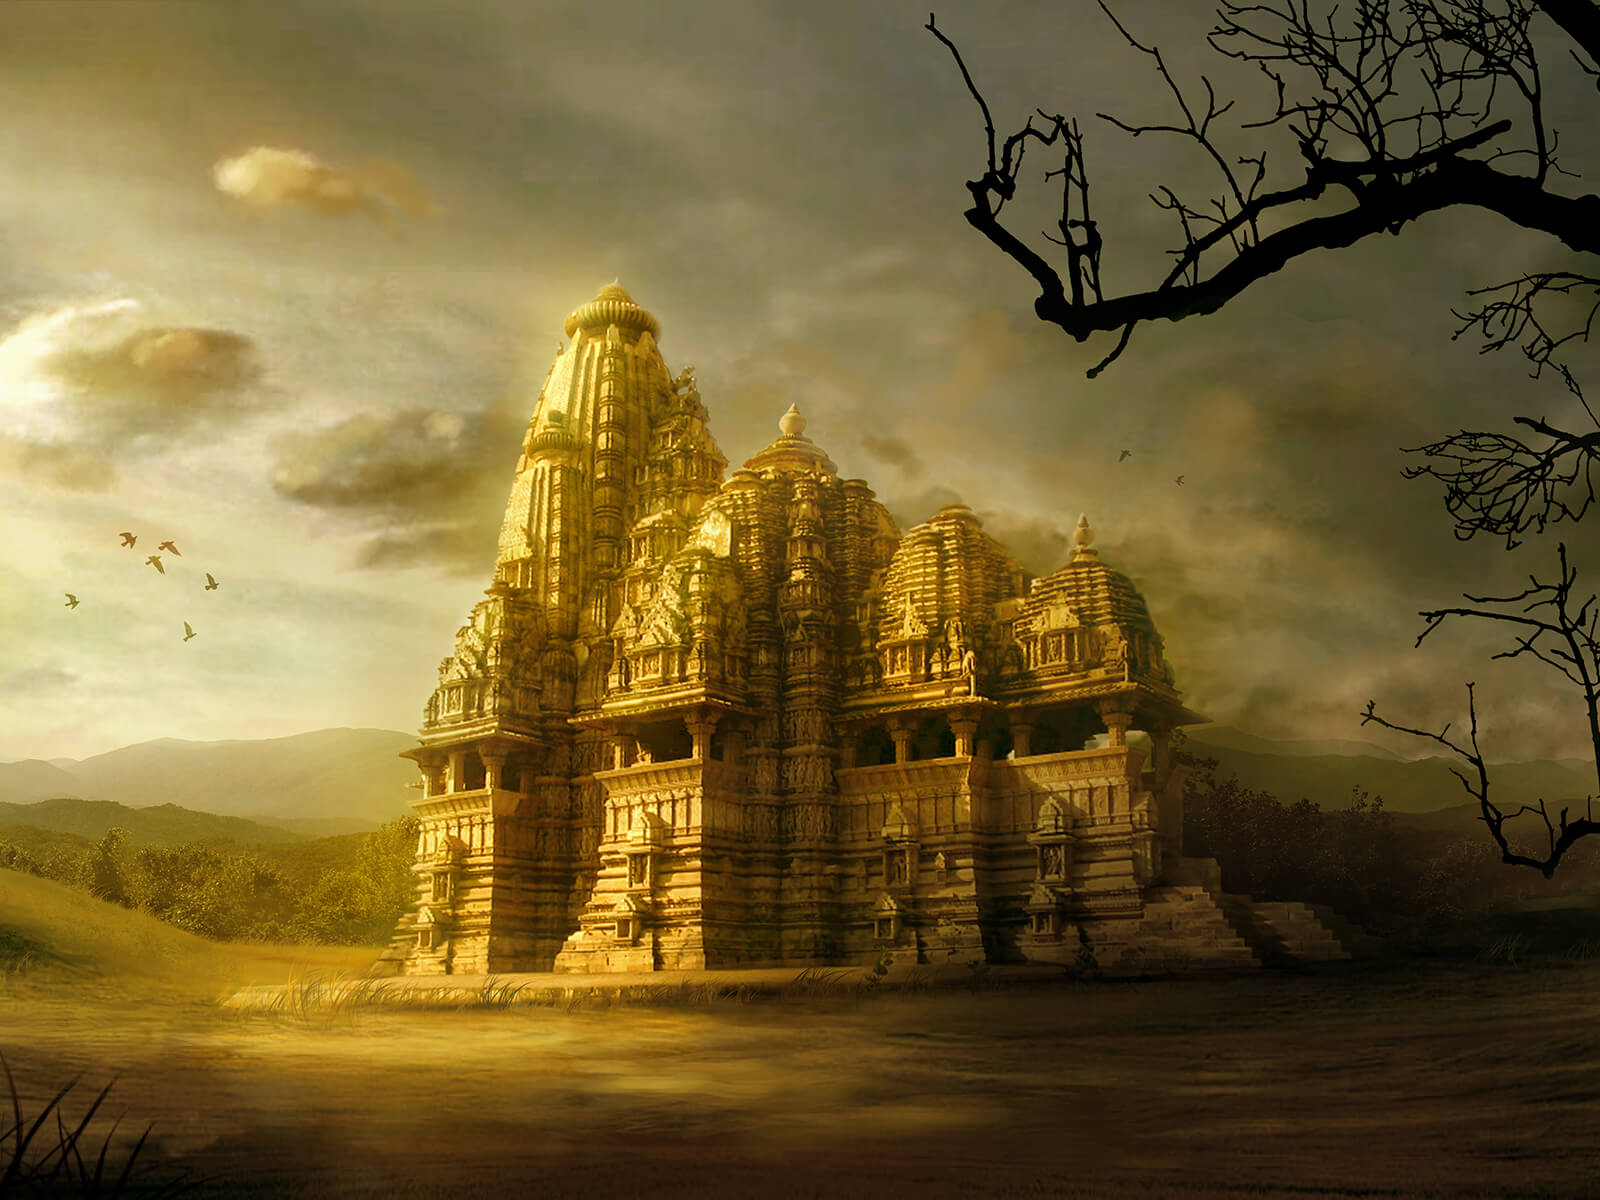 An ornate, abandoned stone temple standing in a grassy clearing, glowing gold in the sunlight.